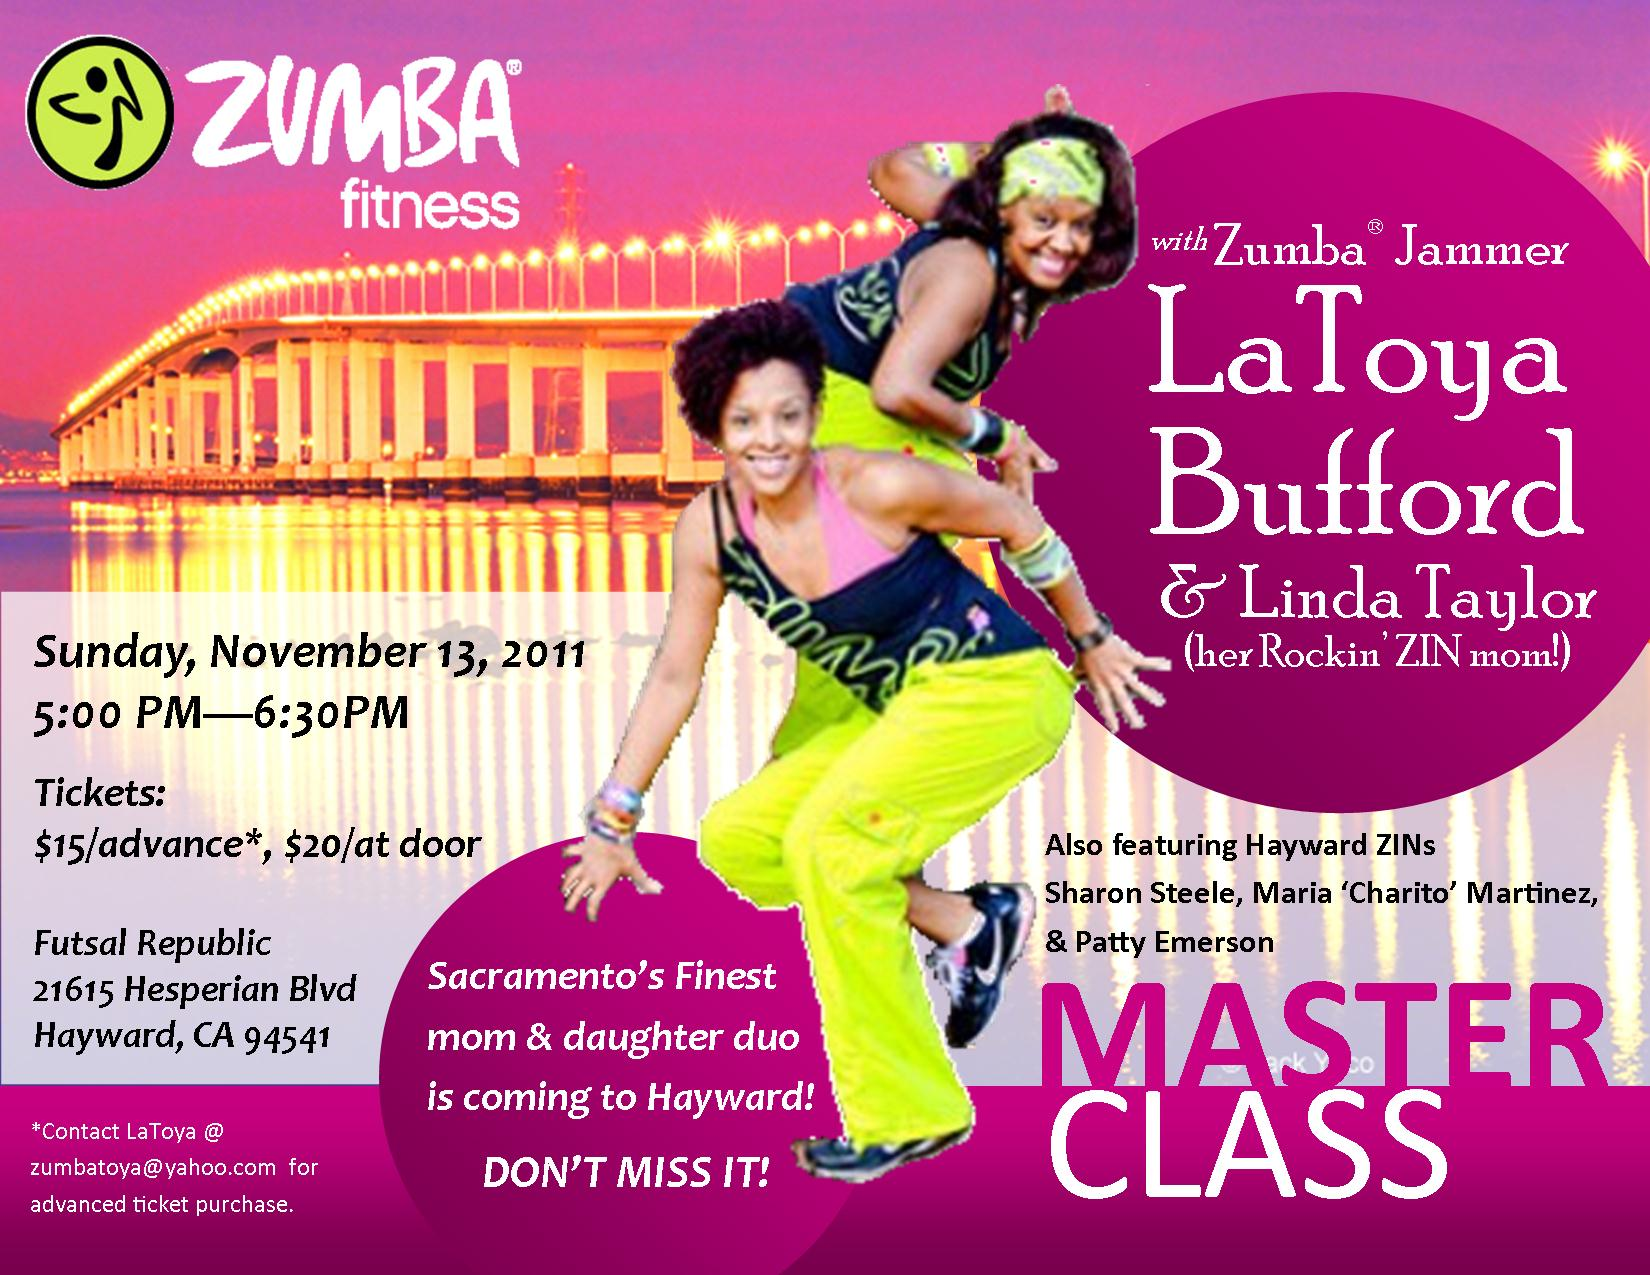 Zumba Class Flyer Only licensed zumba fitnessZumba Class Flyer